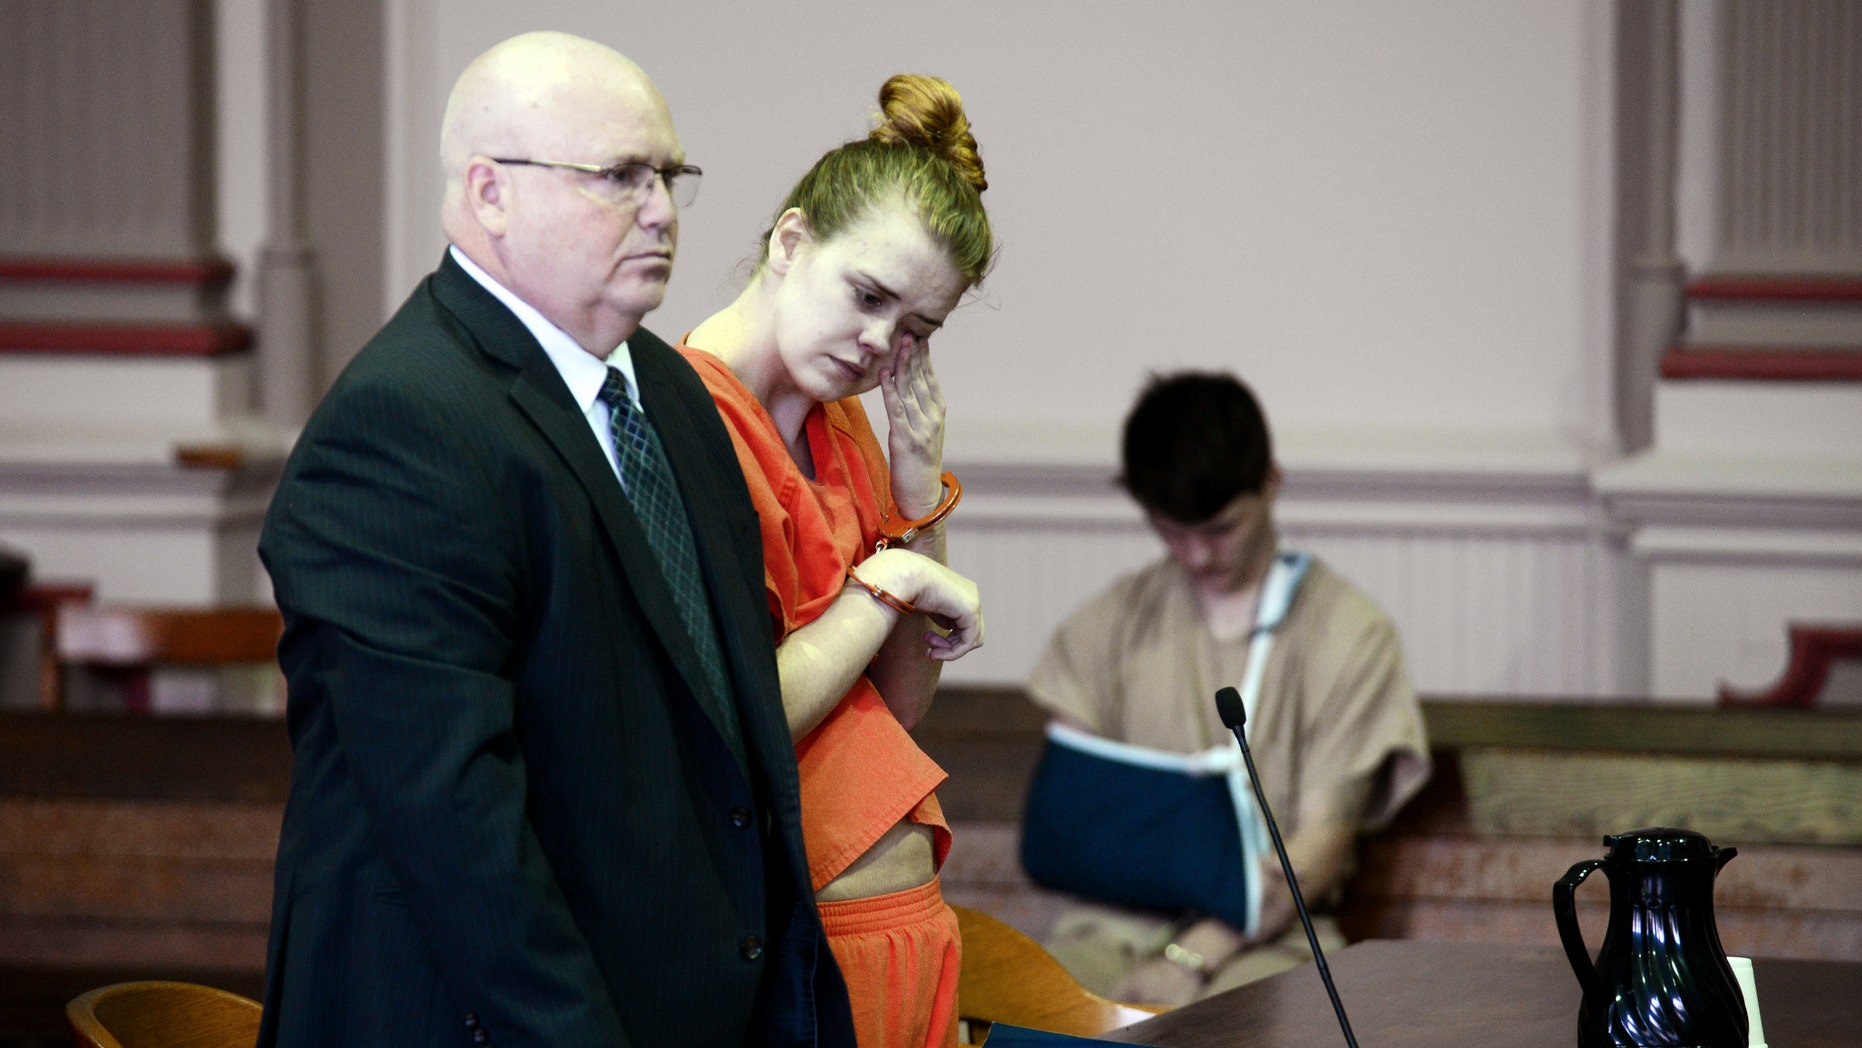 Emile Weaver, center, wipes her eyes while standing next to her attorney.